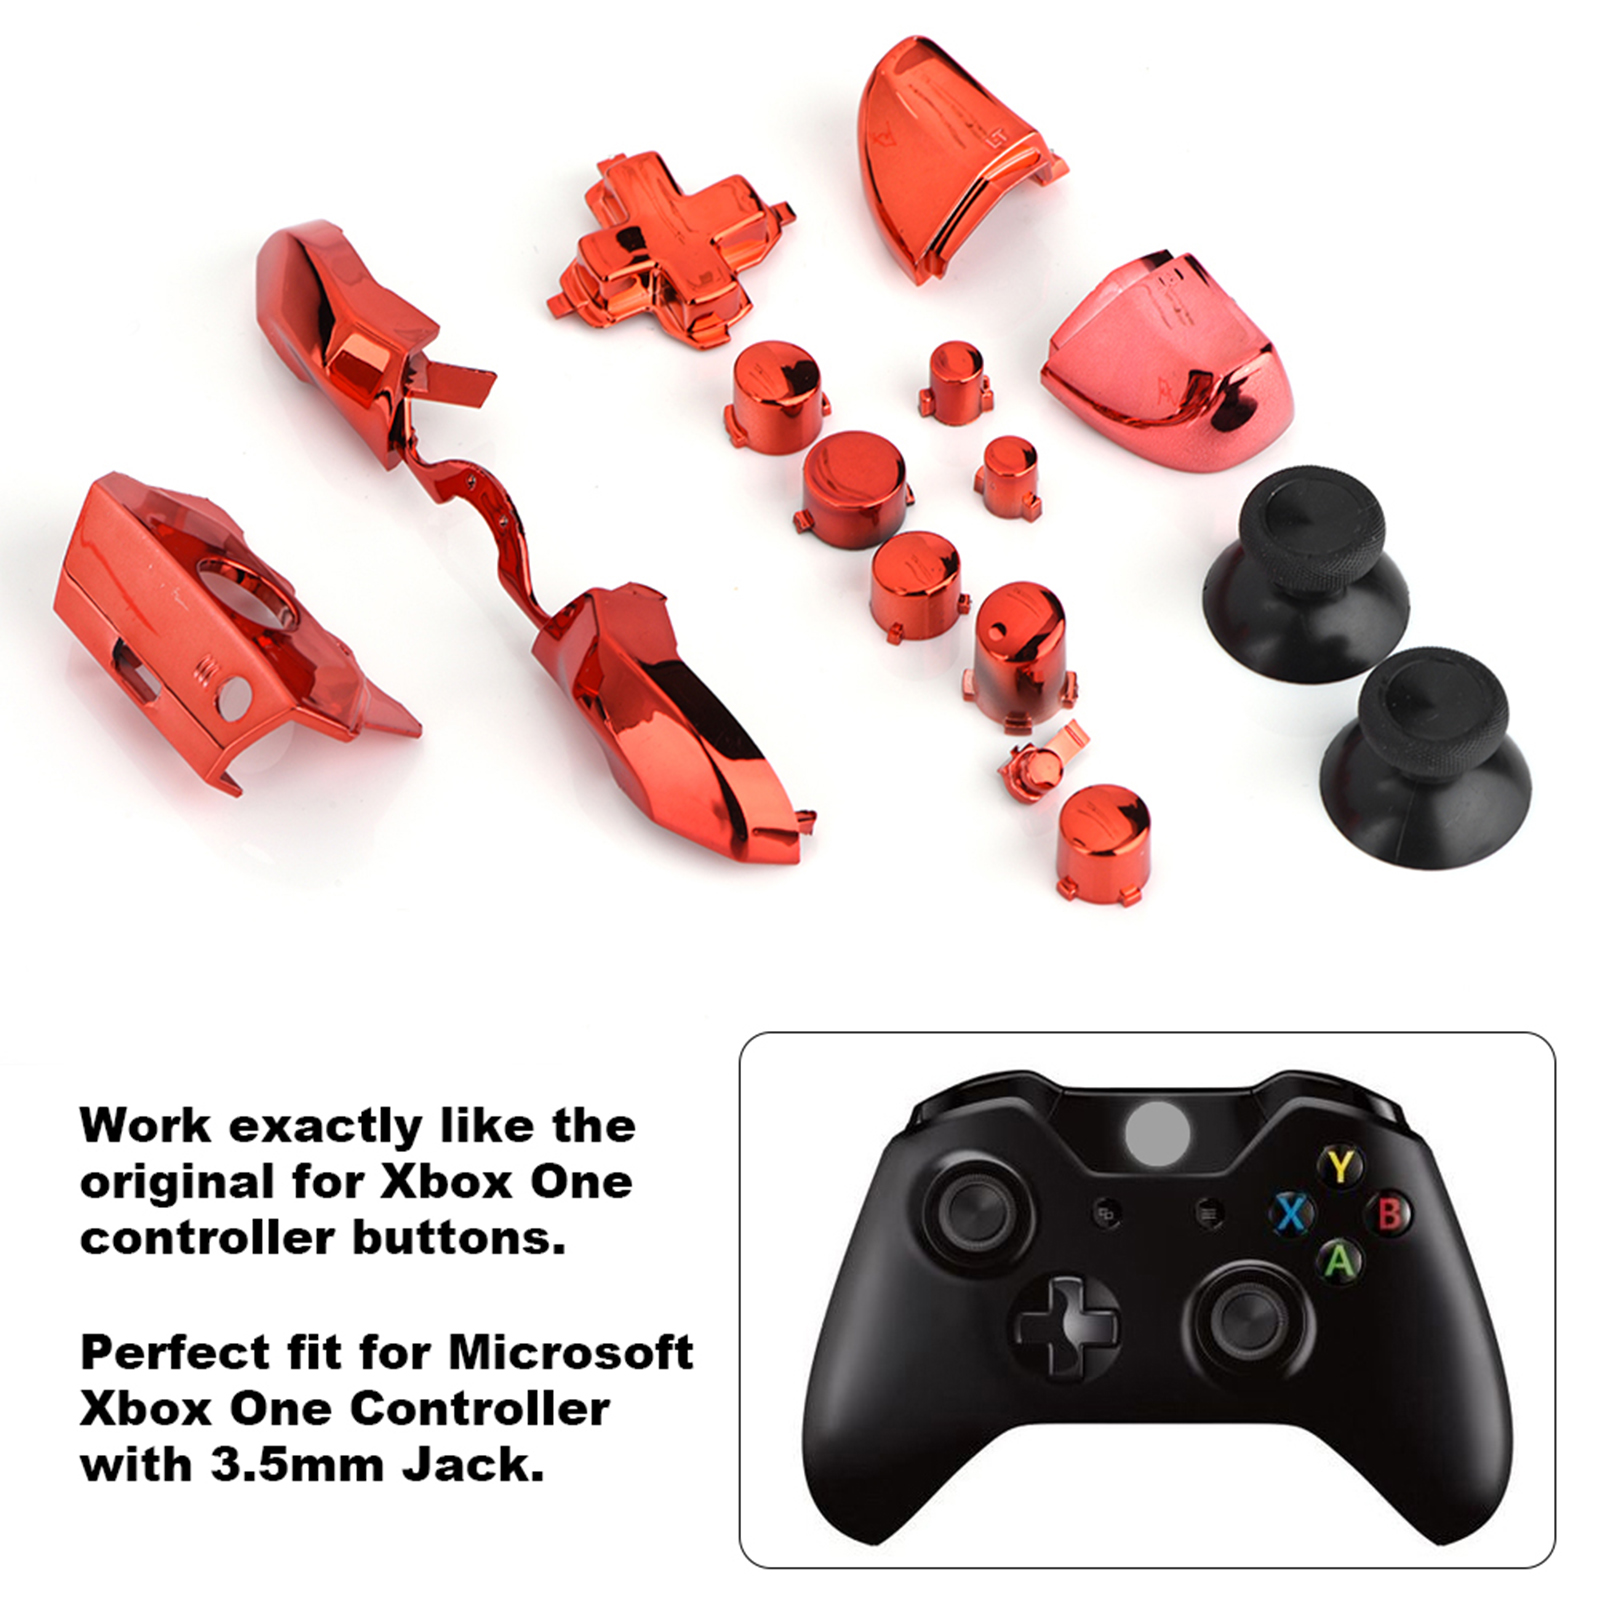 Details about Pro Bullet Buttons Kit Replacement Parts Set for Microsoft  Xbox One Controller S